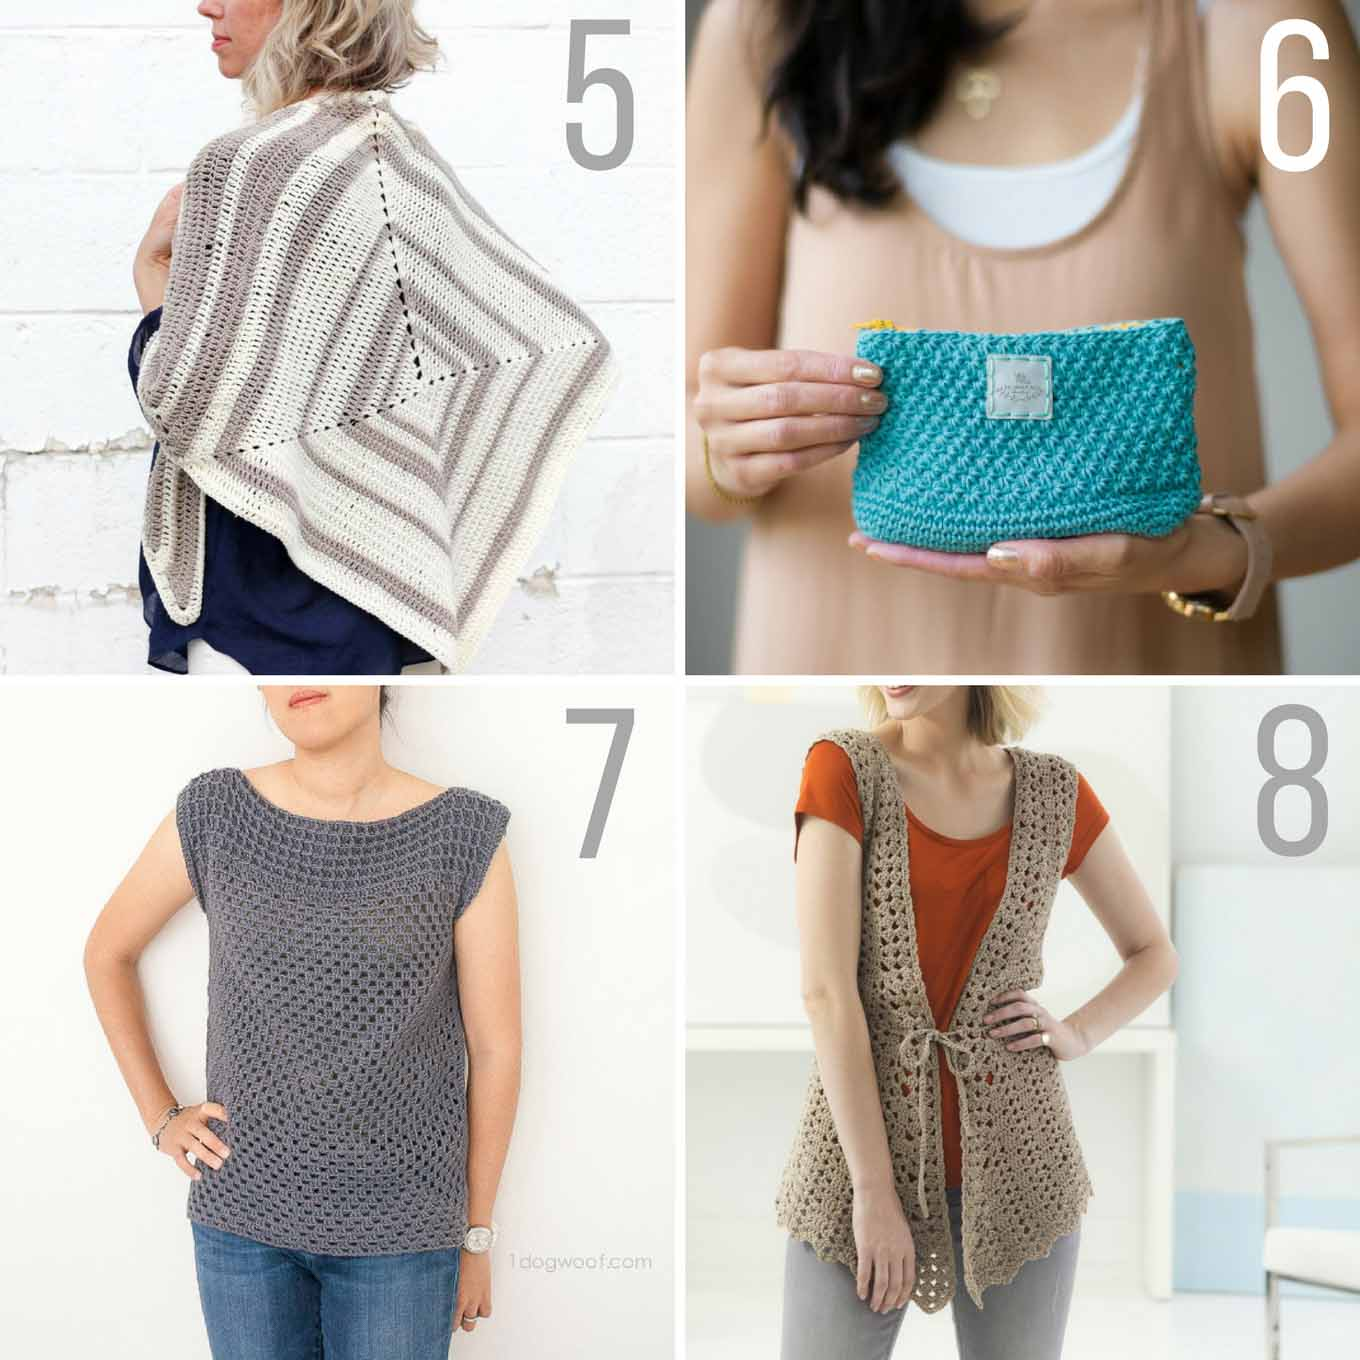 No crochet hibernation! This collection of popular spring and summer crochet patterns using Lion Brand yarn will give you plenty of ways to stay busy during the warmer months--and best of all, they're all free! Crochet vests, crochet purses and simple shirts included!